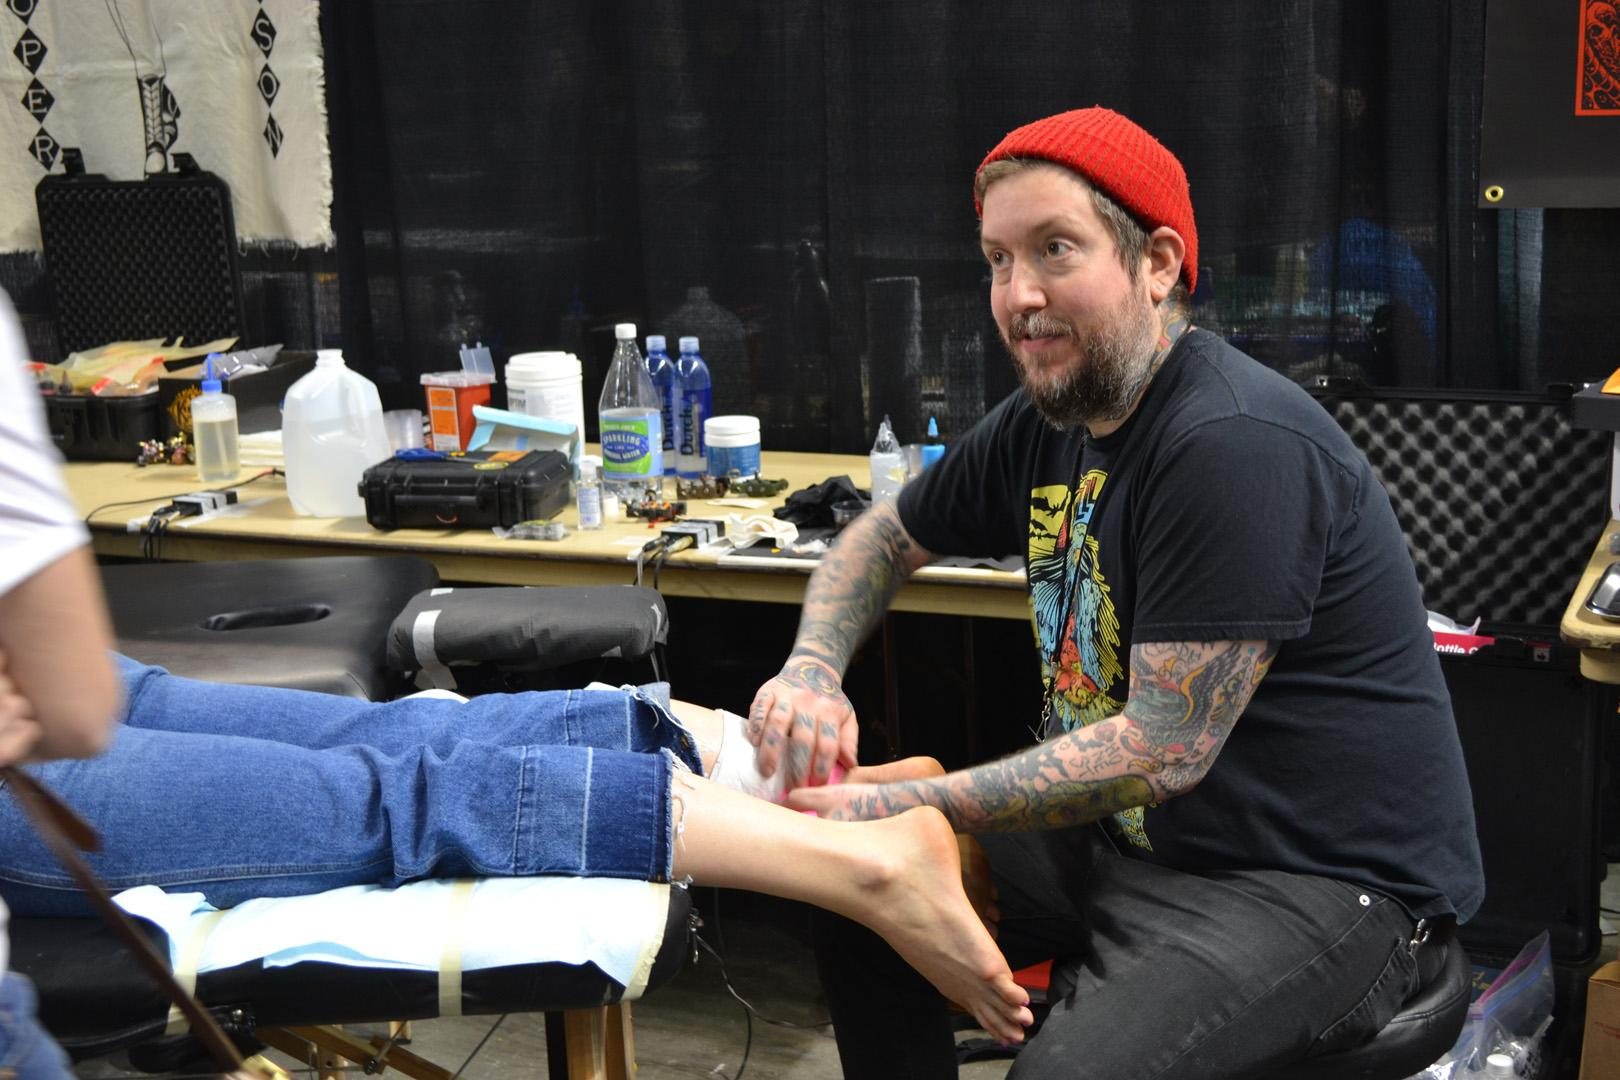 Some of the best tattoo artists are at Century Link Arena in Boise for the first ever Treasure Valley Tattoo Convention. The three-day event features artists, vendors, food, beer and of course, tattoo. (KBOI Staff Photo)